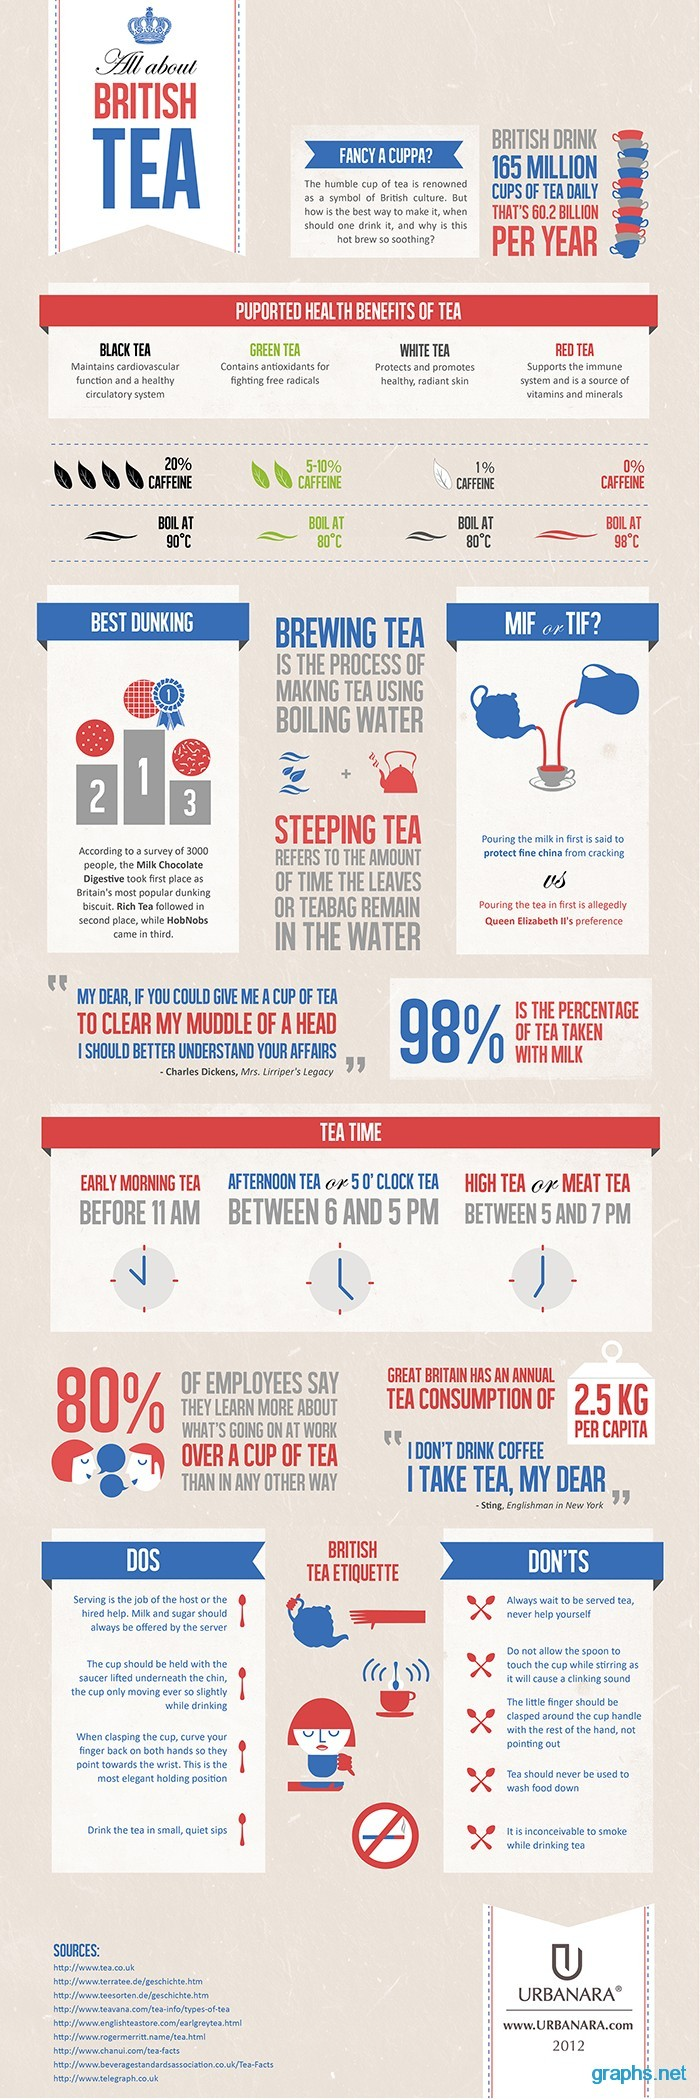 Interesting Facts About British Tea